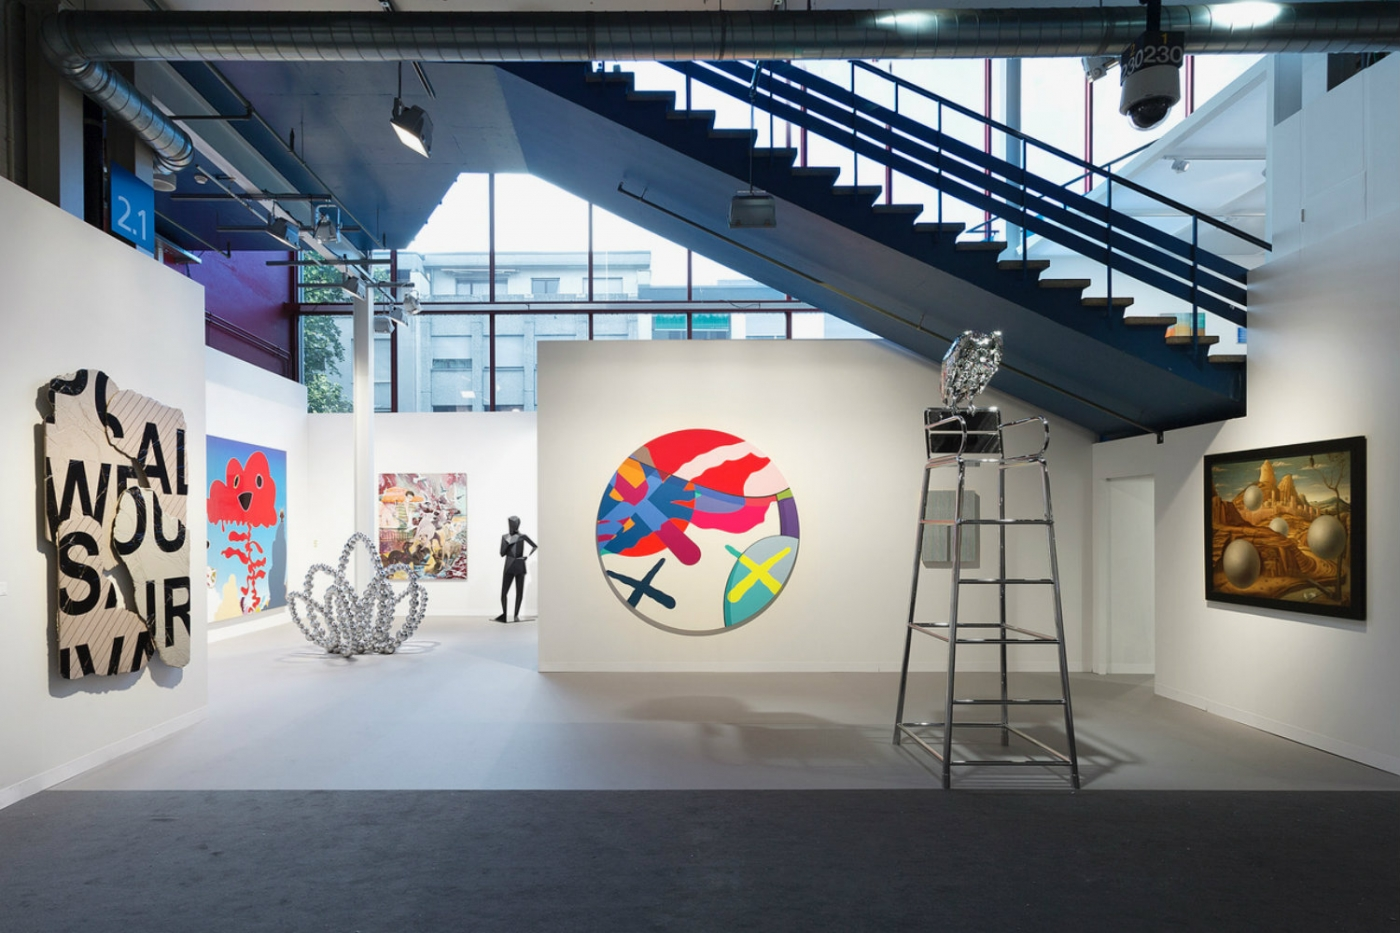 art basel miami Best Art Galleries To Explore at Art Basel Miami 2018 featured 1400x933